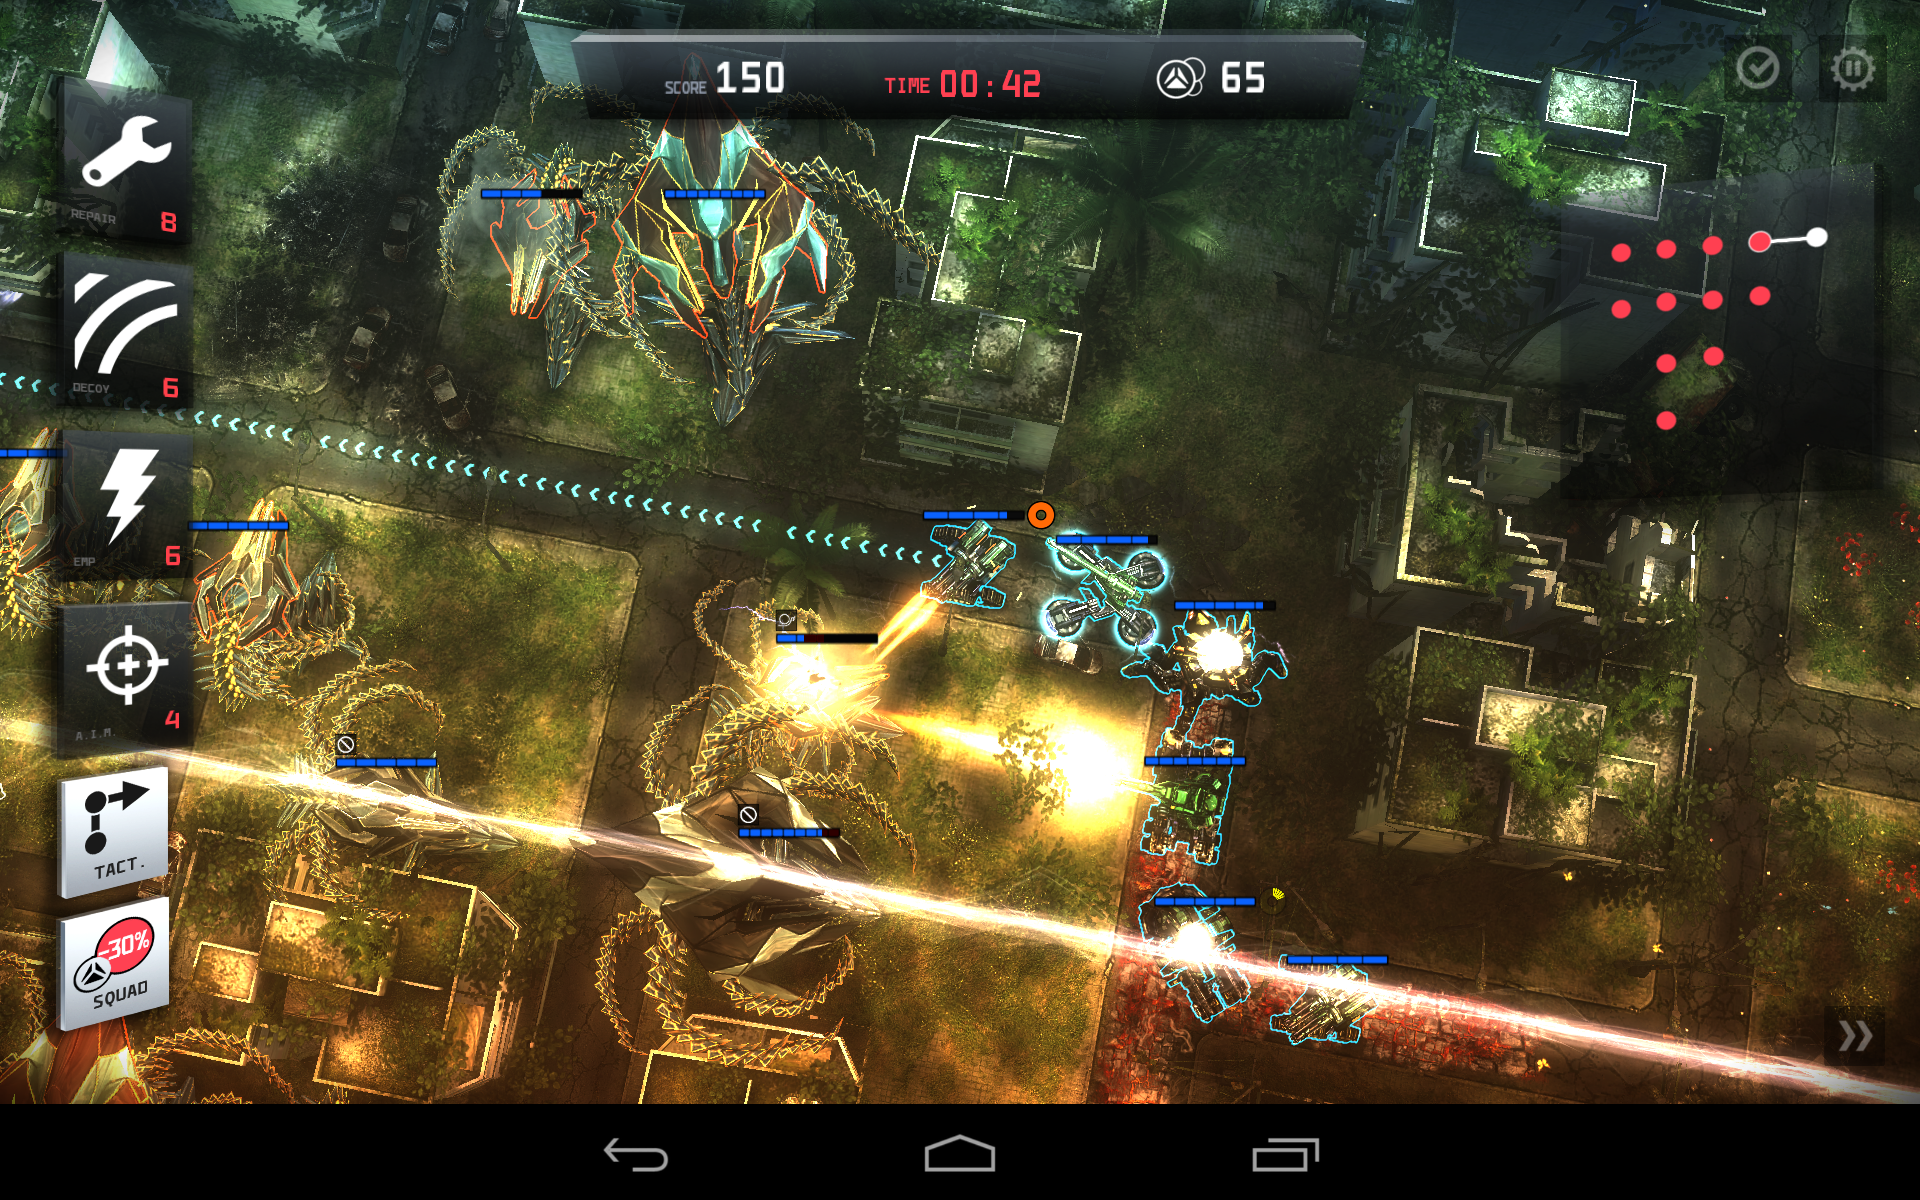 [Hands-On Preview] Anomaly 2 Introduces Transforming Robots To An Already Awesome Game Franchise